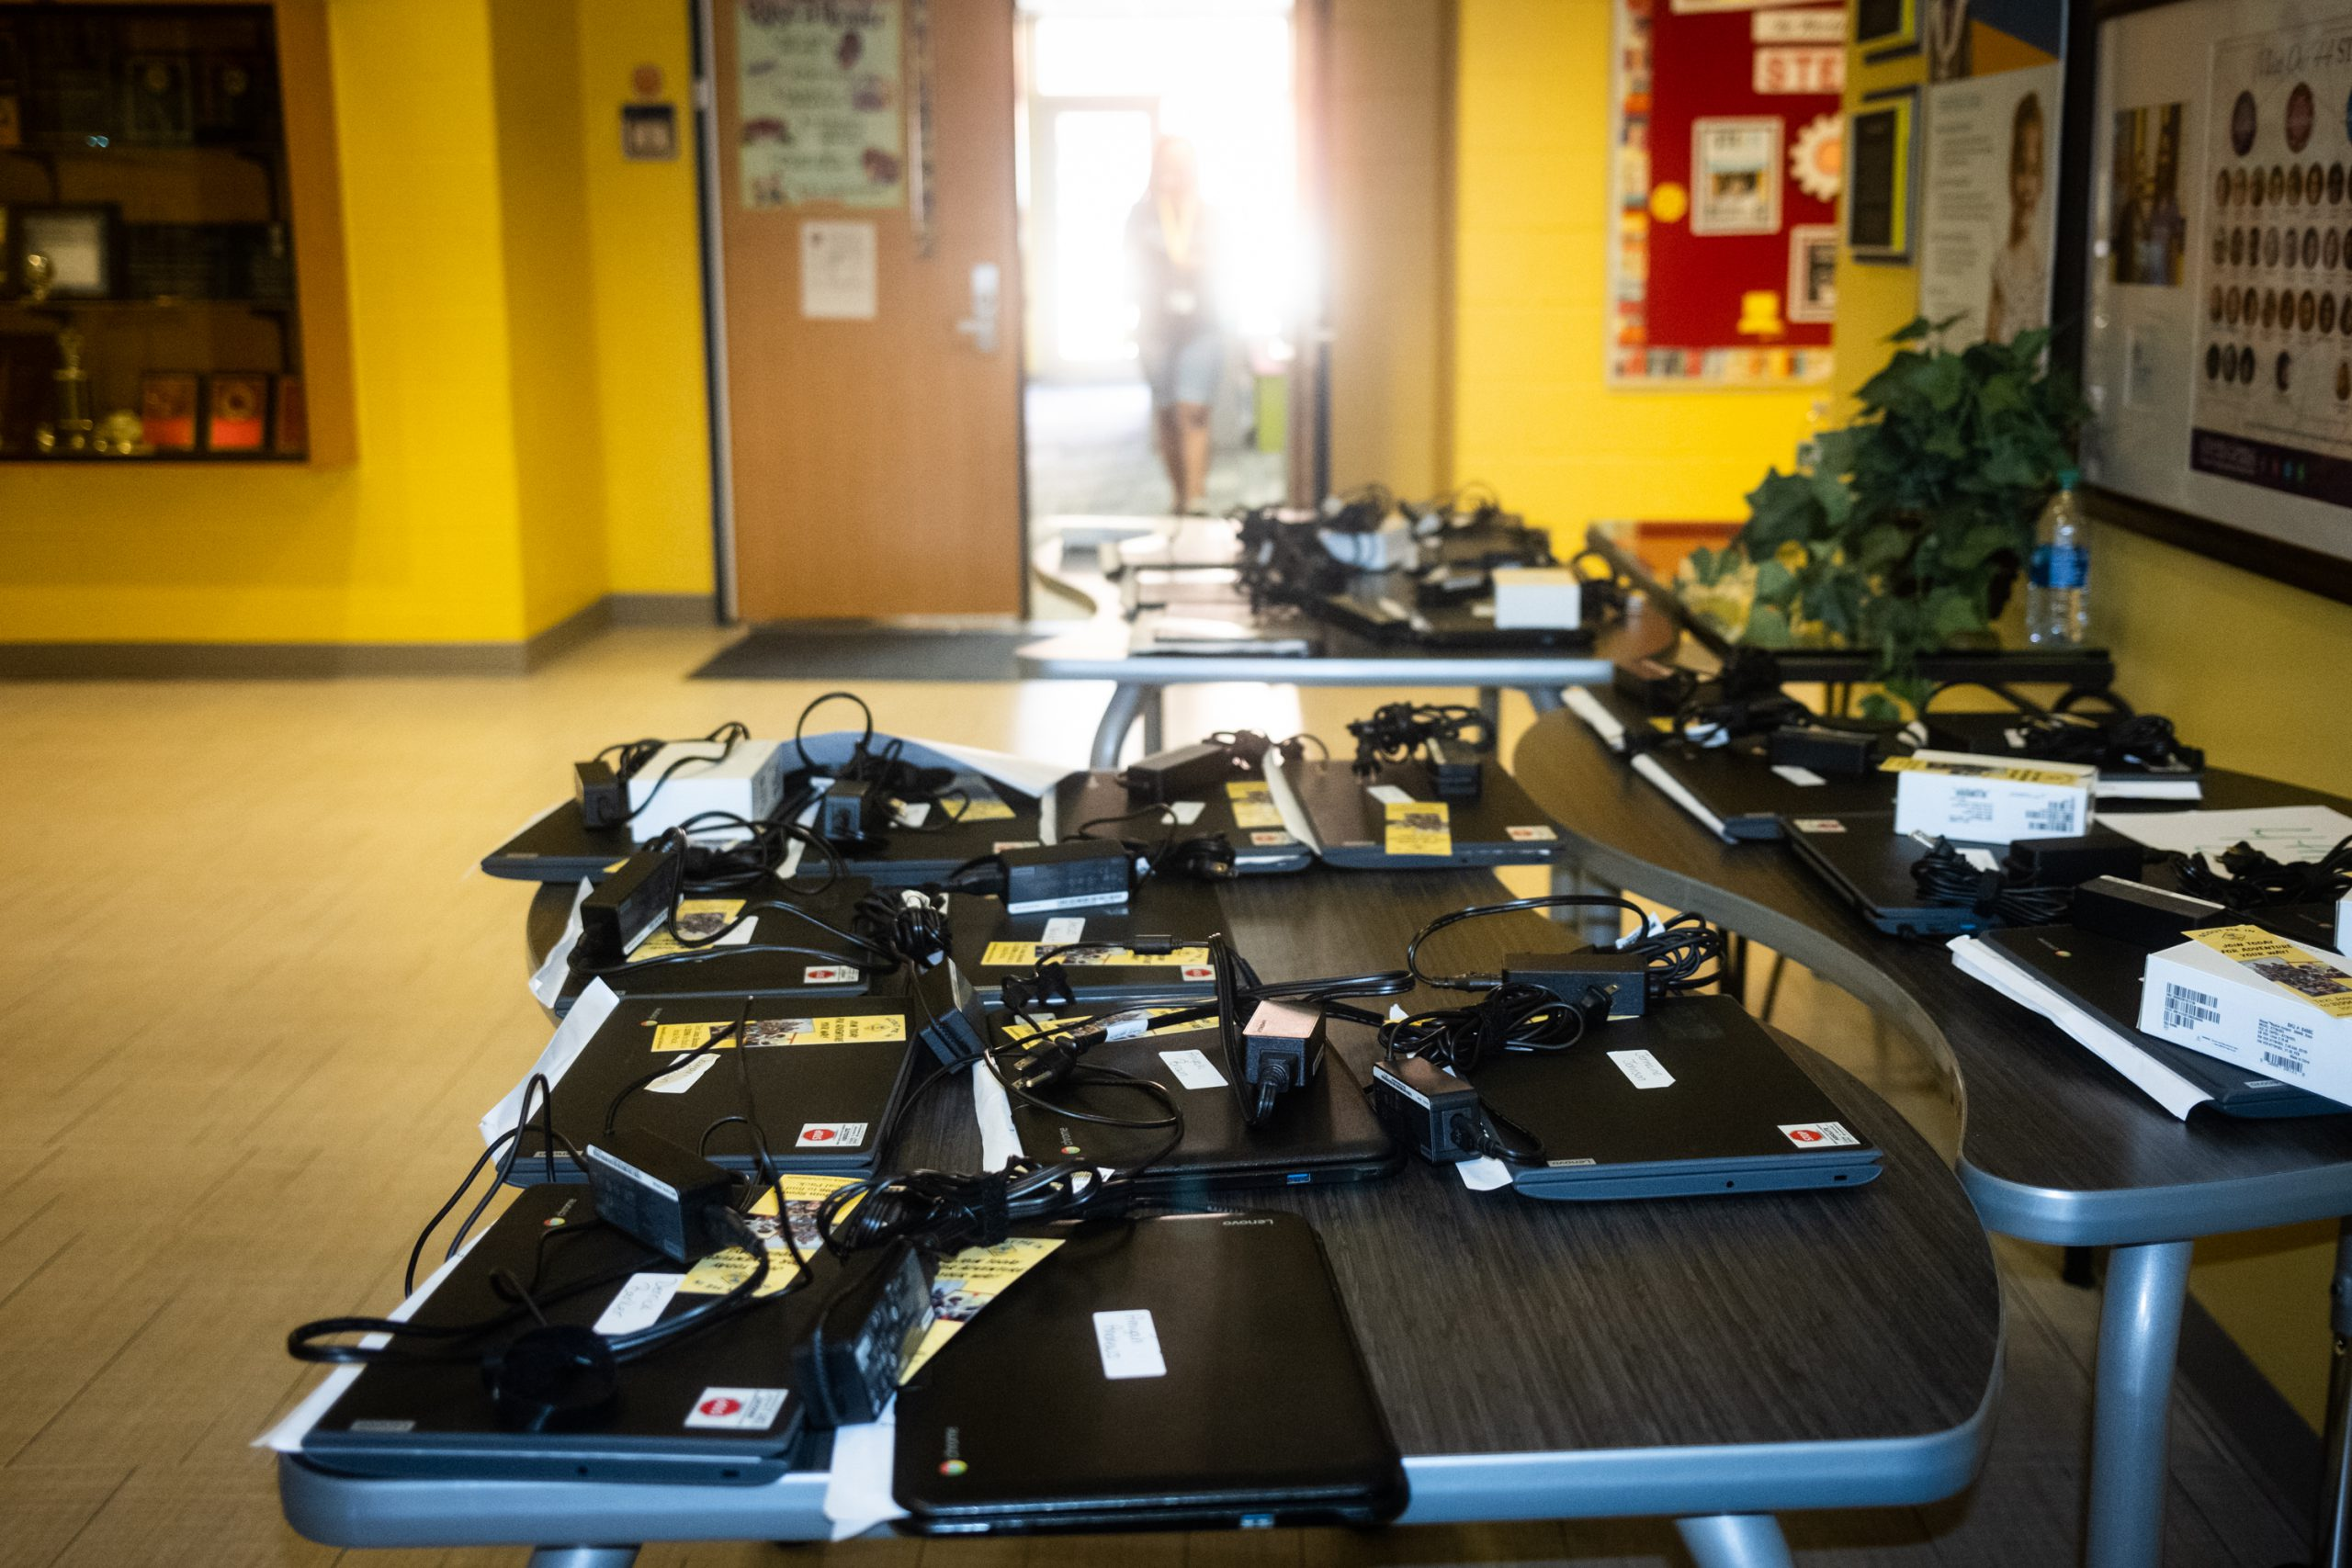 Laptops for students on table at APS building